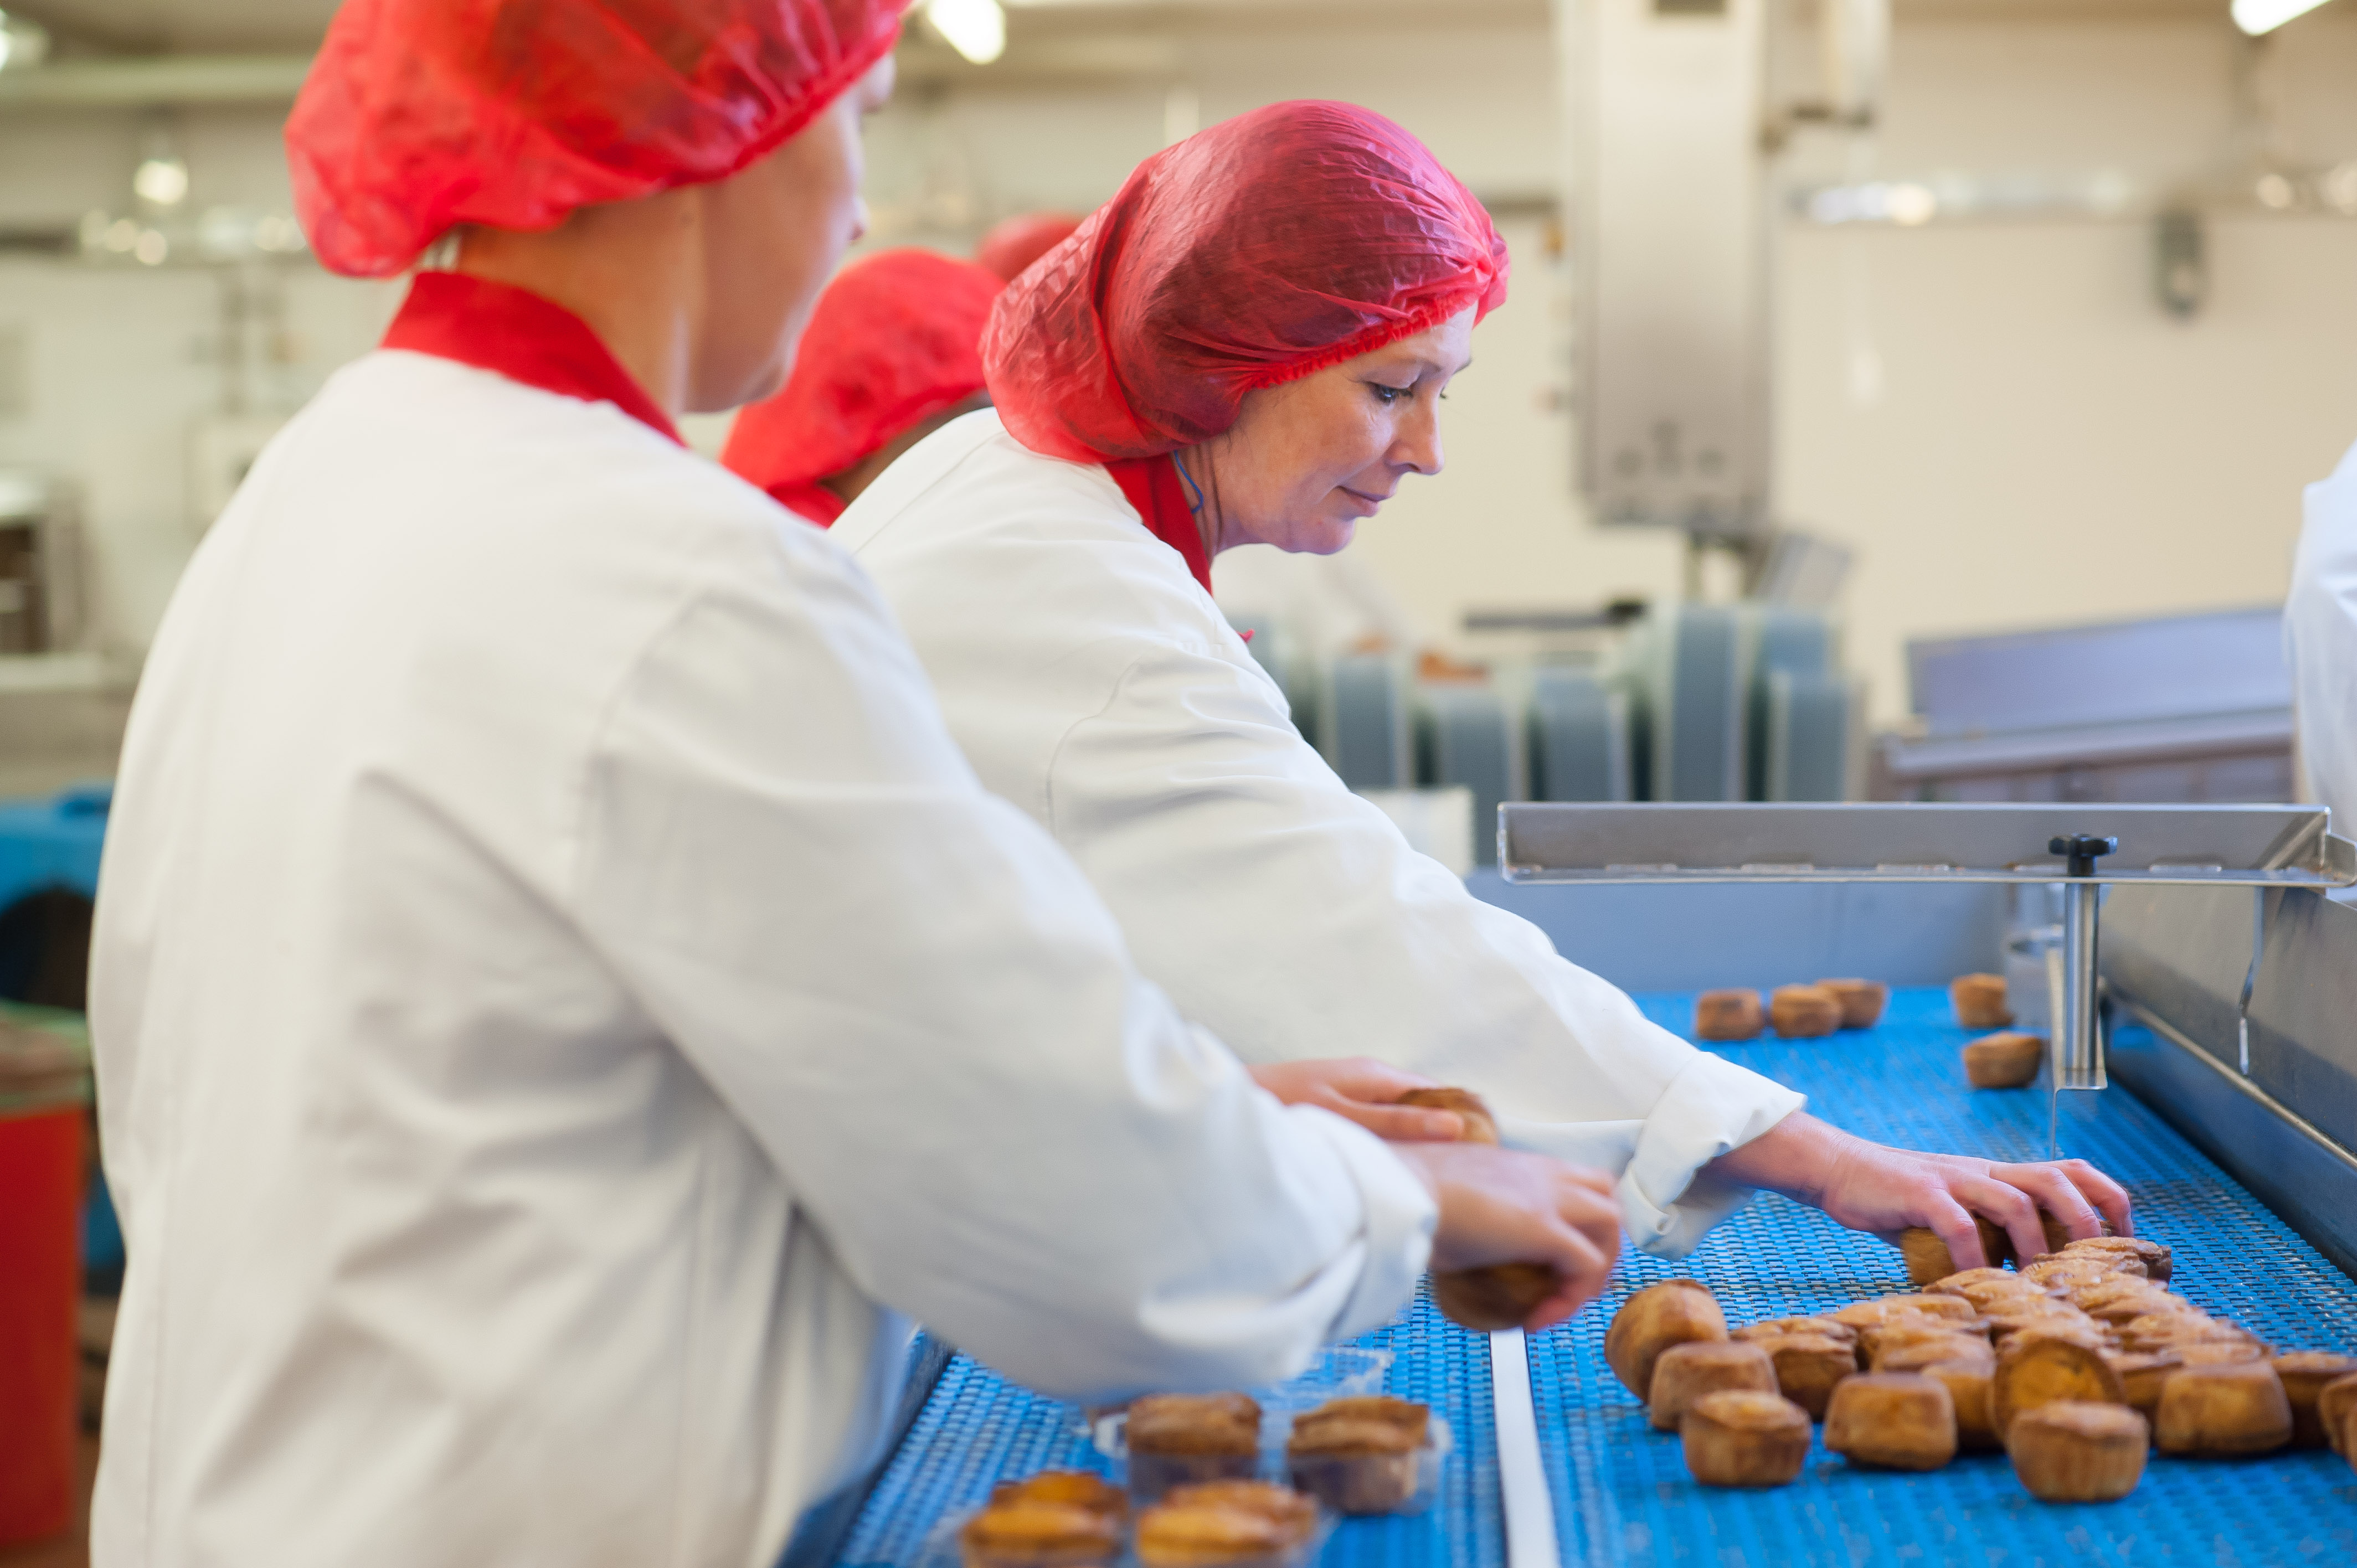 EMPLOYEES RACK UP MORE THAN 3,500 YEARS OF SERVICE AT EAST MIDLANDS-BASED FOOD MANUFACTURER